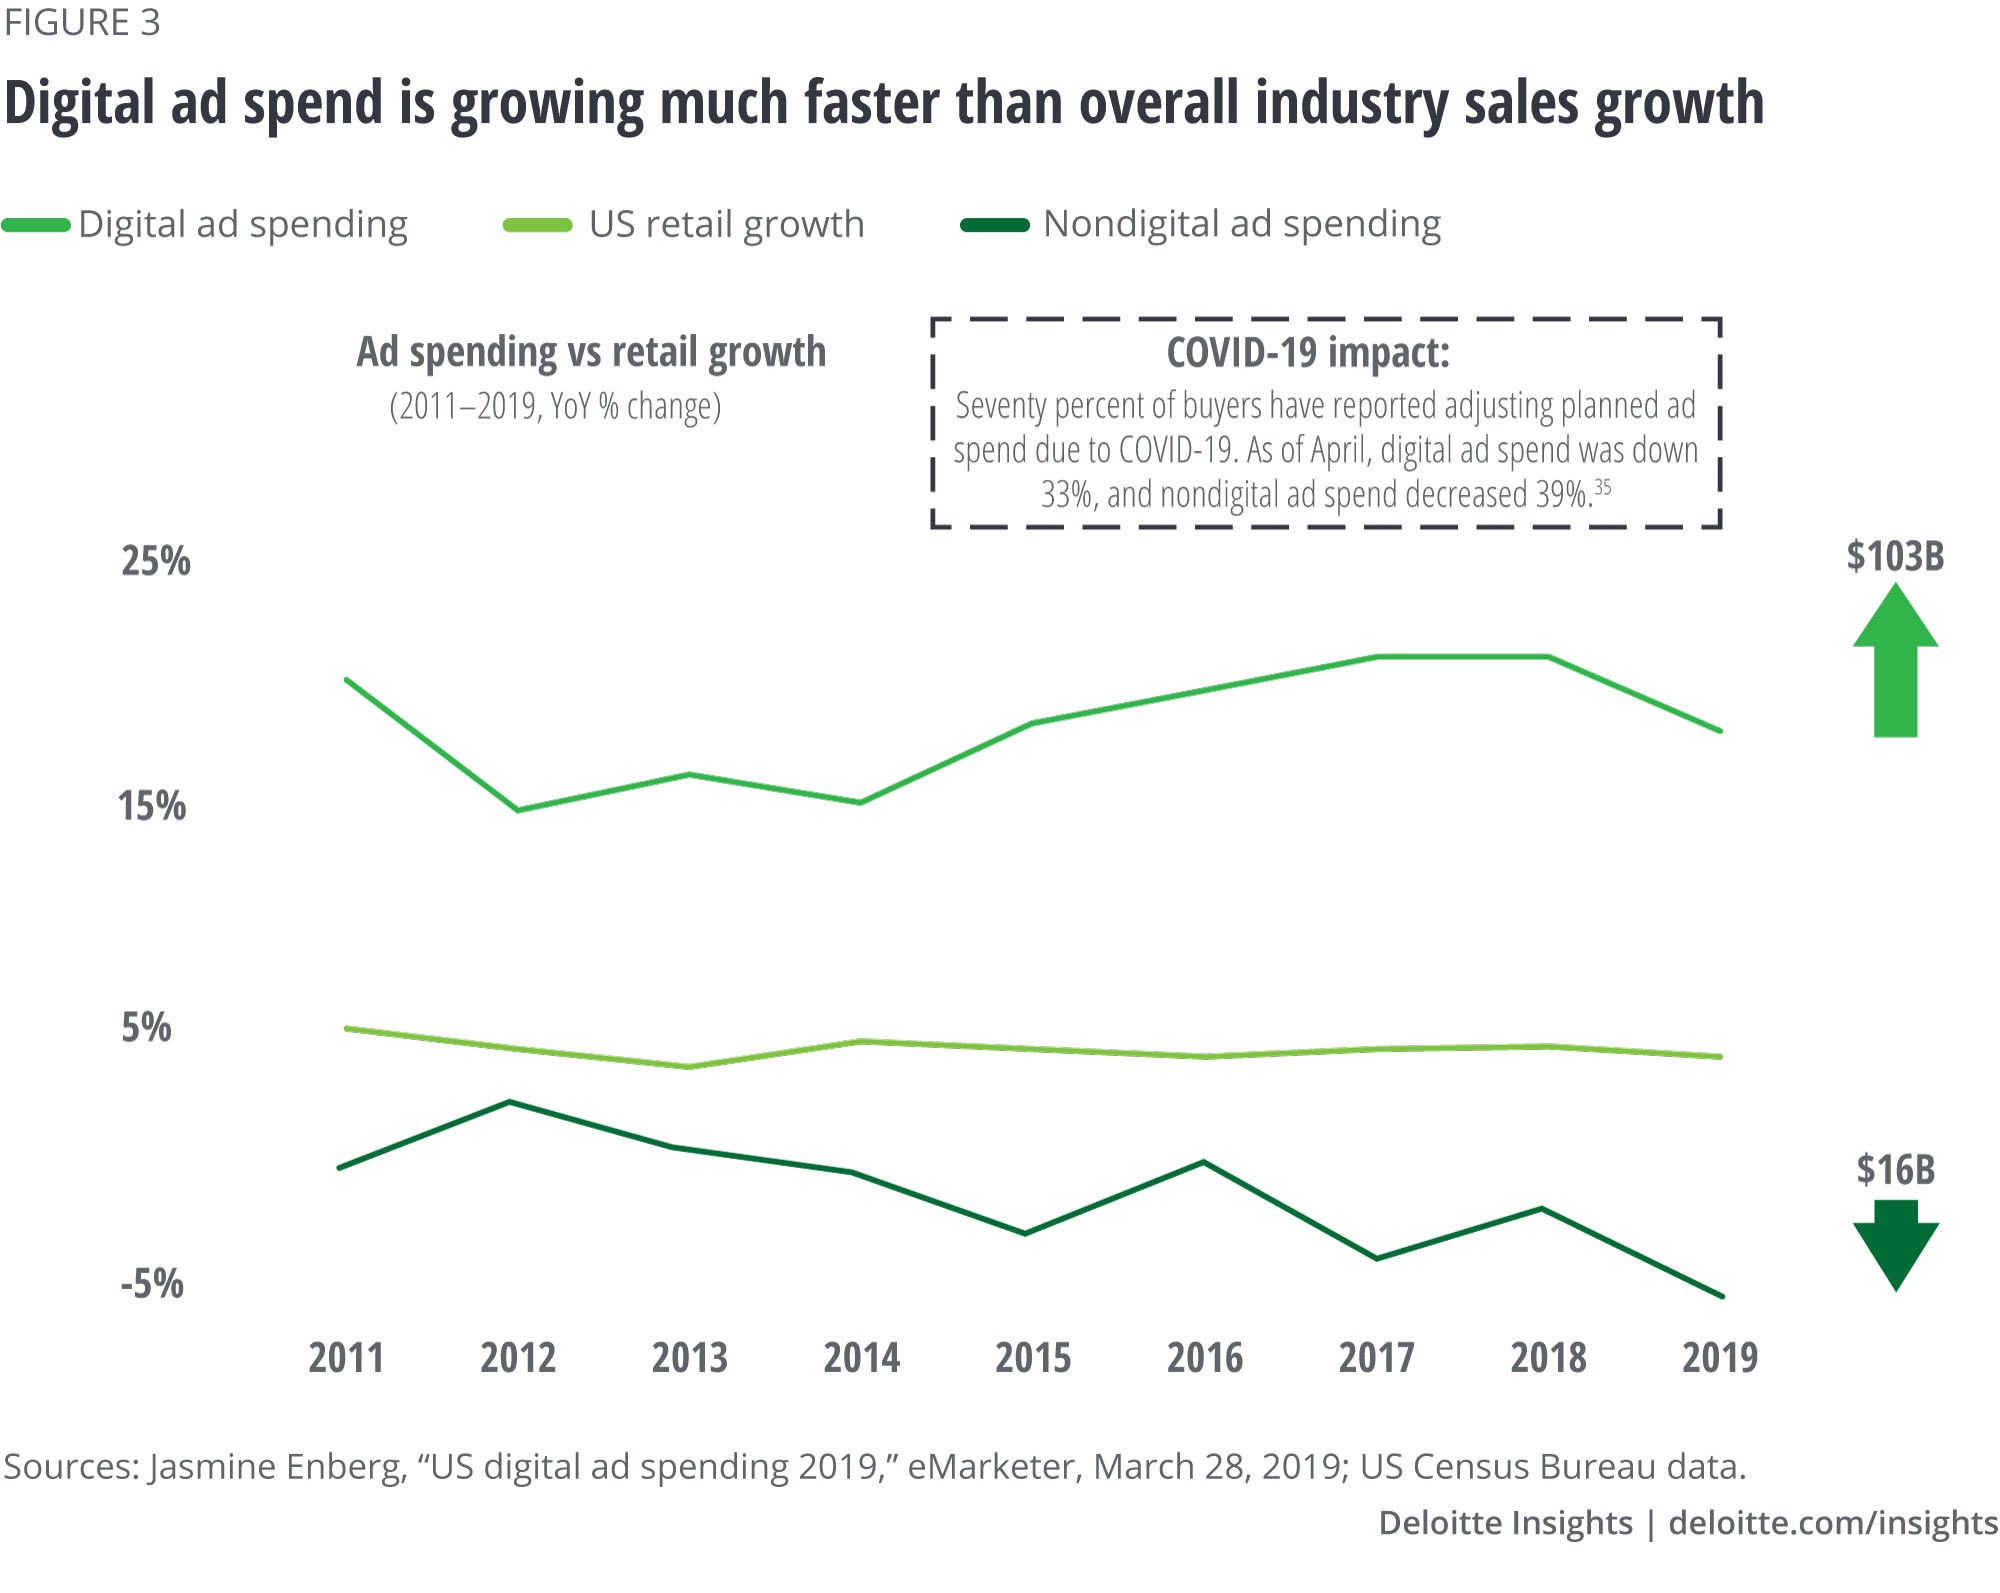 Digital ad spend is growing much faster than overall industry sales growth